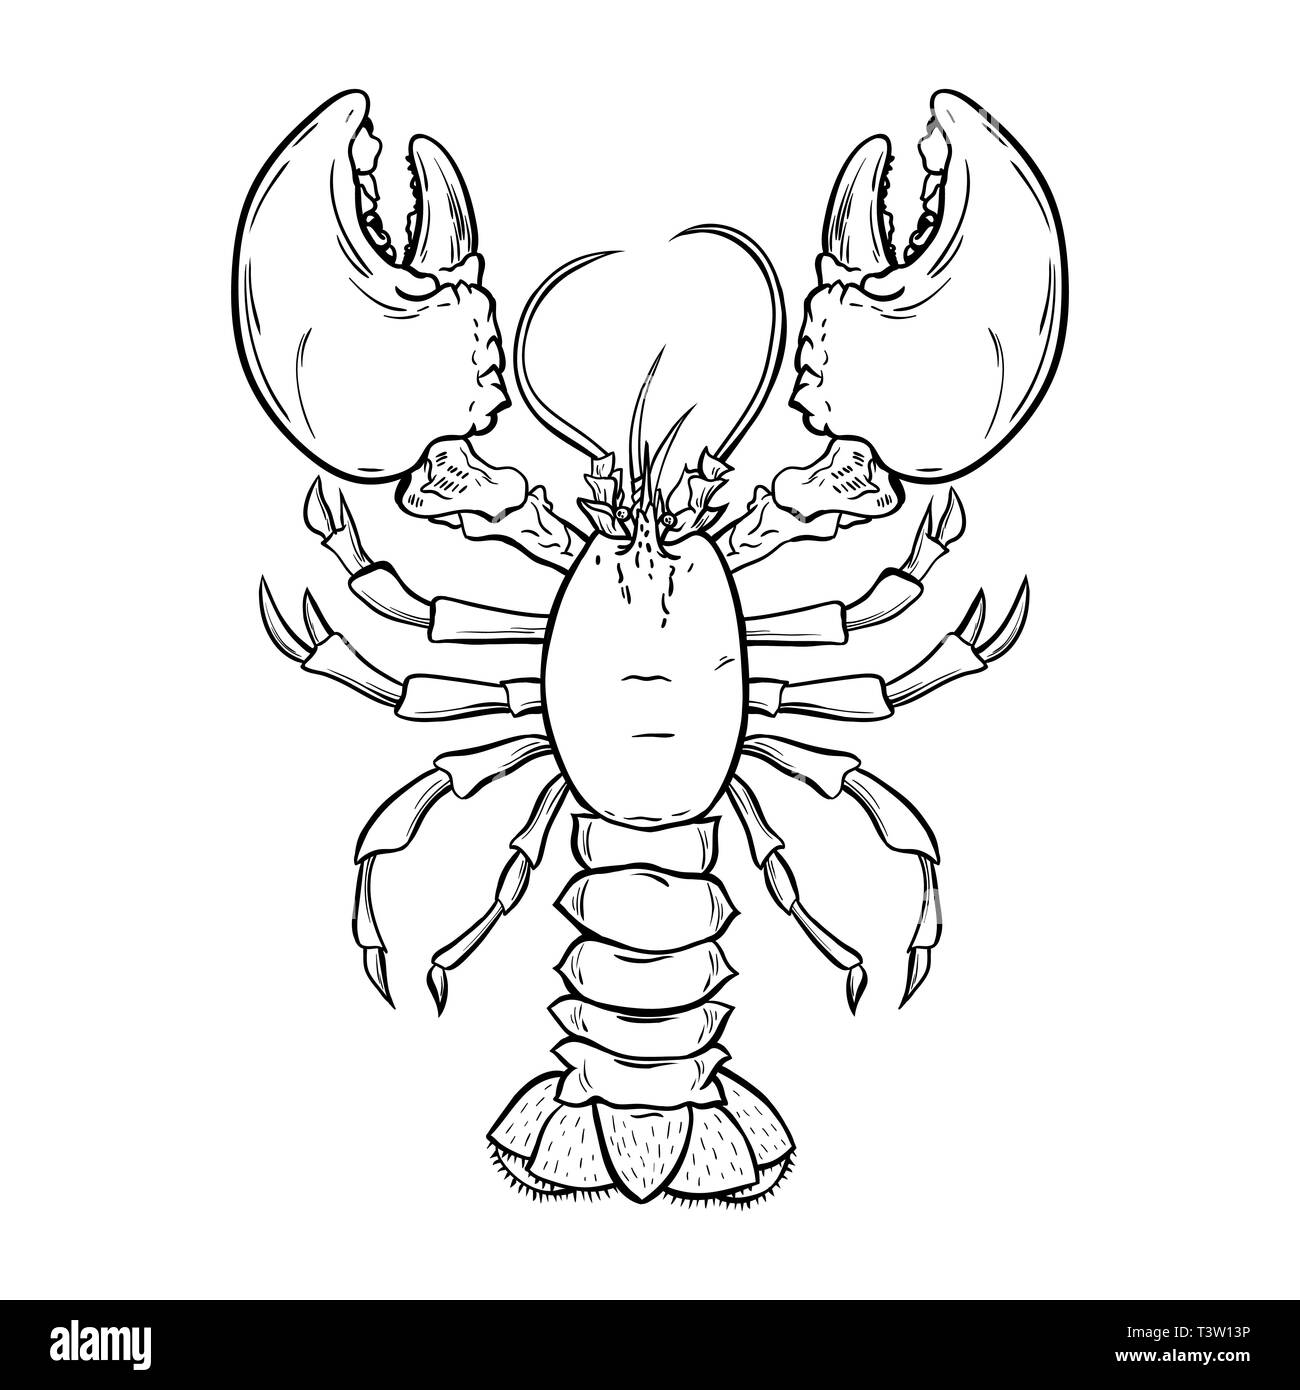 Lobster, crayfish hand drawn outline Illustration. Crawfish, crustacean ink pen sketch. Seafood restaurant delicacy. Underwater biology freehand drawing. Sealife isolated engraving design element - Stock Vector